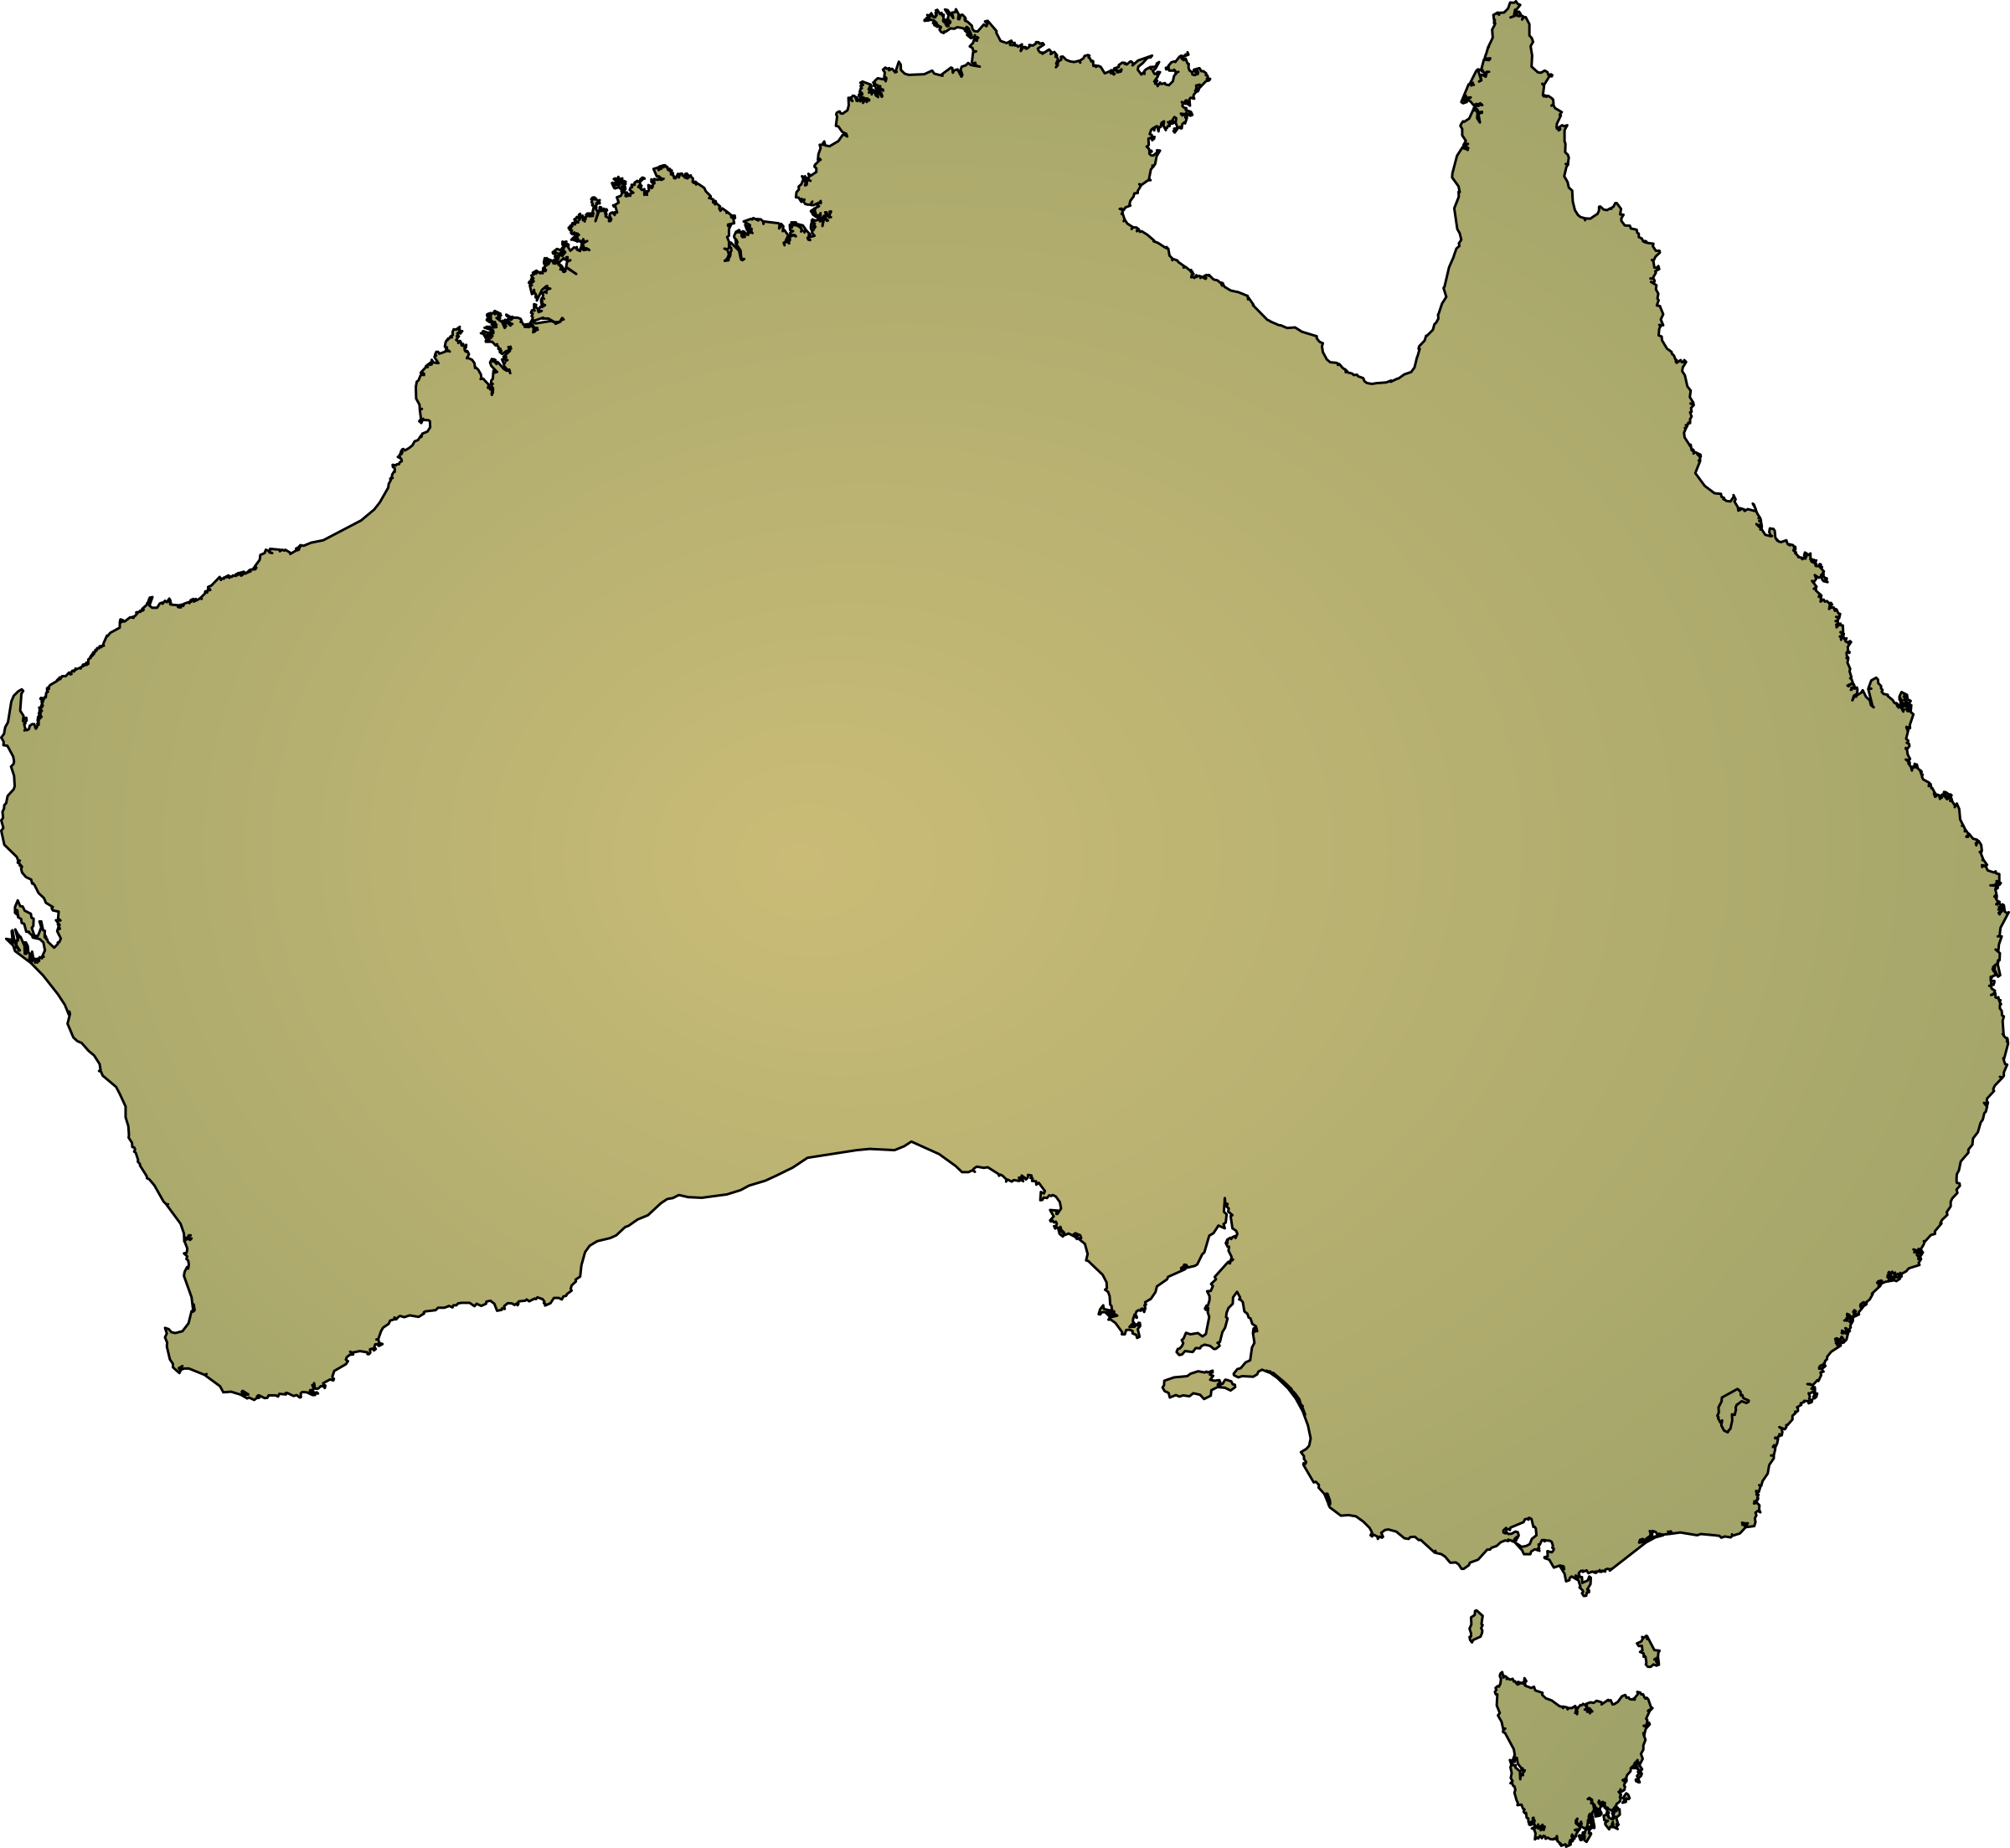 australia-shading-without-boundaries by cgoerner